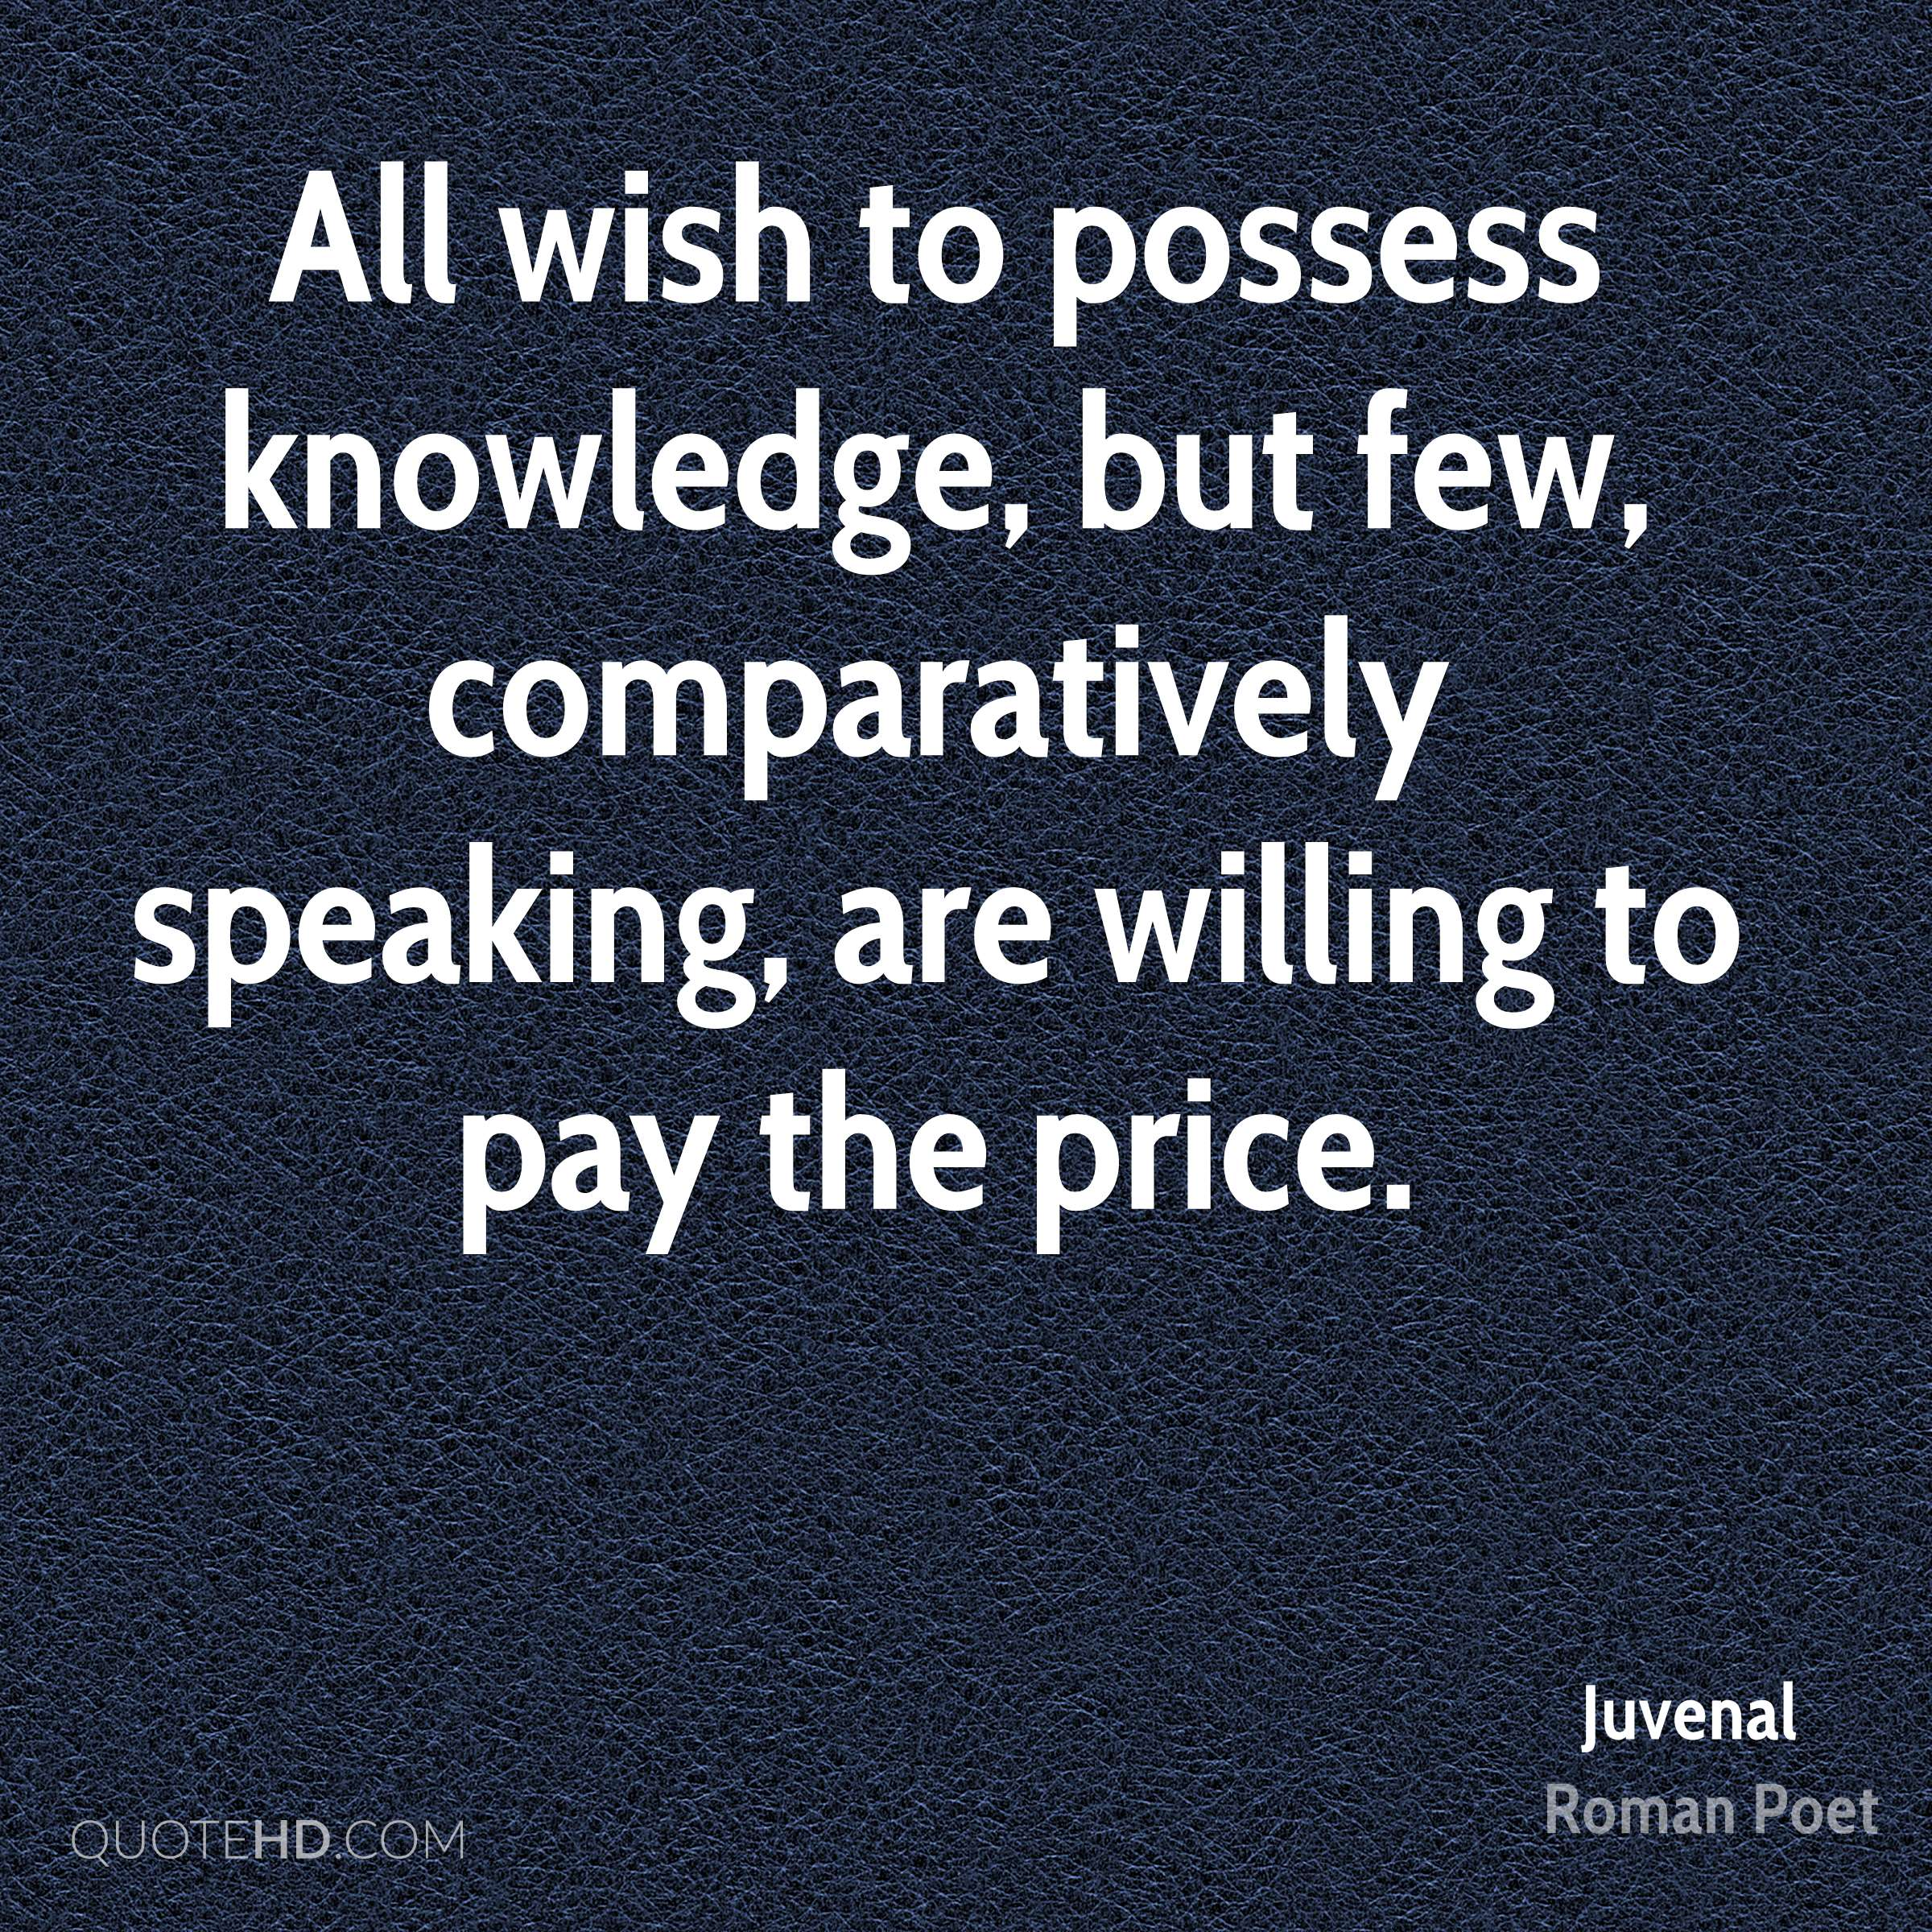 All wish to possess knowledge, but few, comparatively speaking, are willing to pay the price.